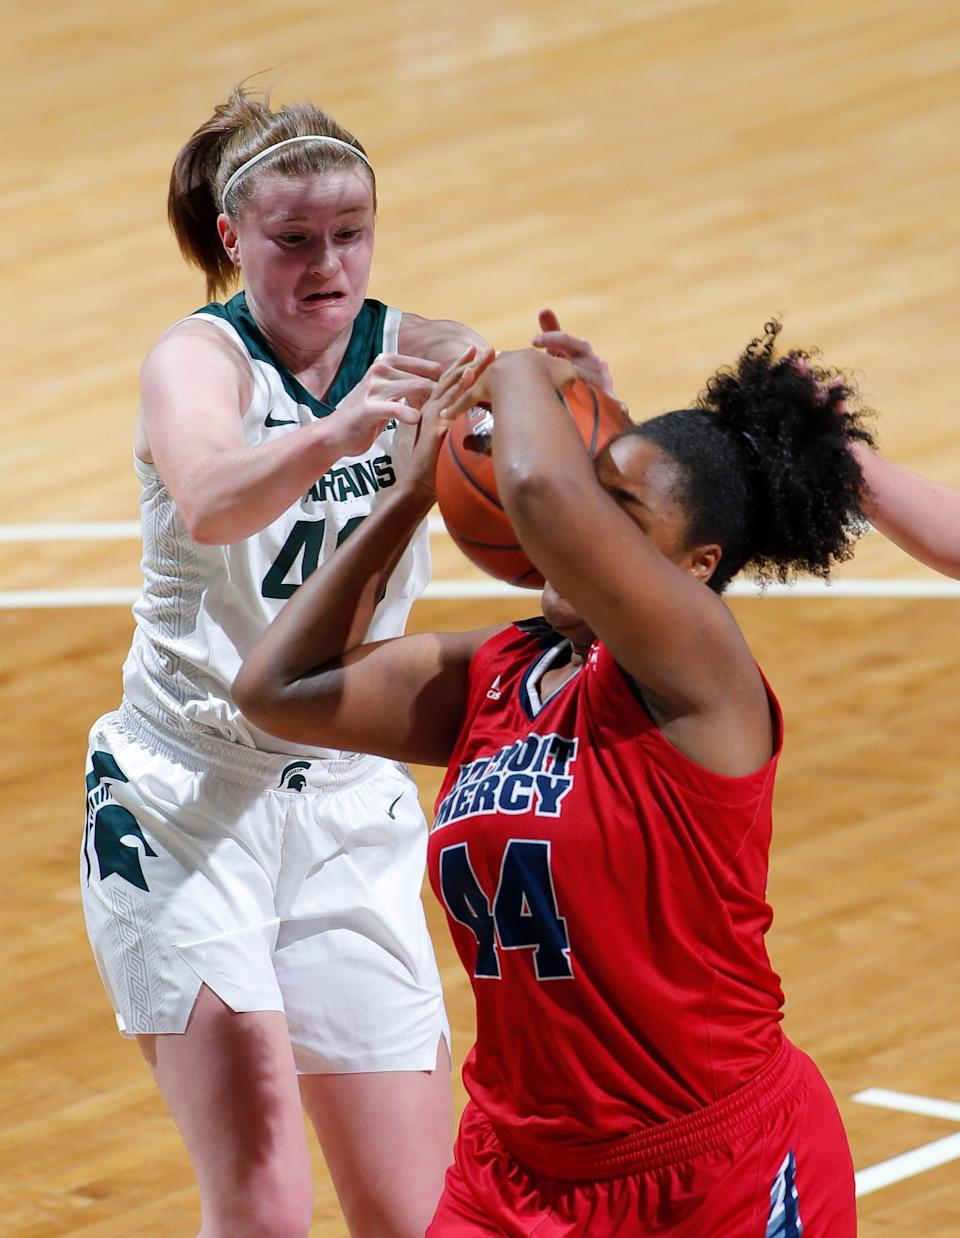 Michigan State's Julia Ayrault, left, and Detroit's Maxine Moore battle for a rebound, Wednesday, Dec. 2, 2020, in East Lansing, Mich. Michigan State won 82-45.